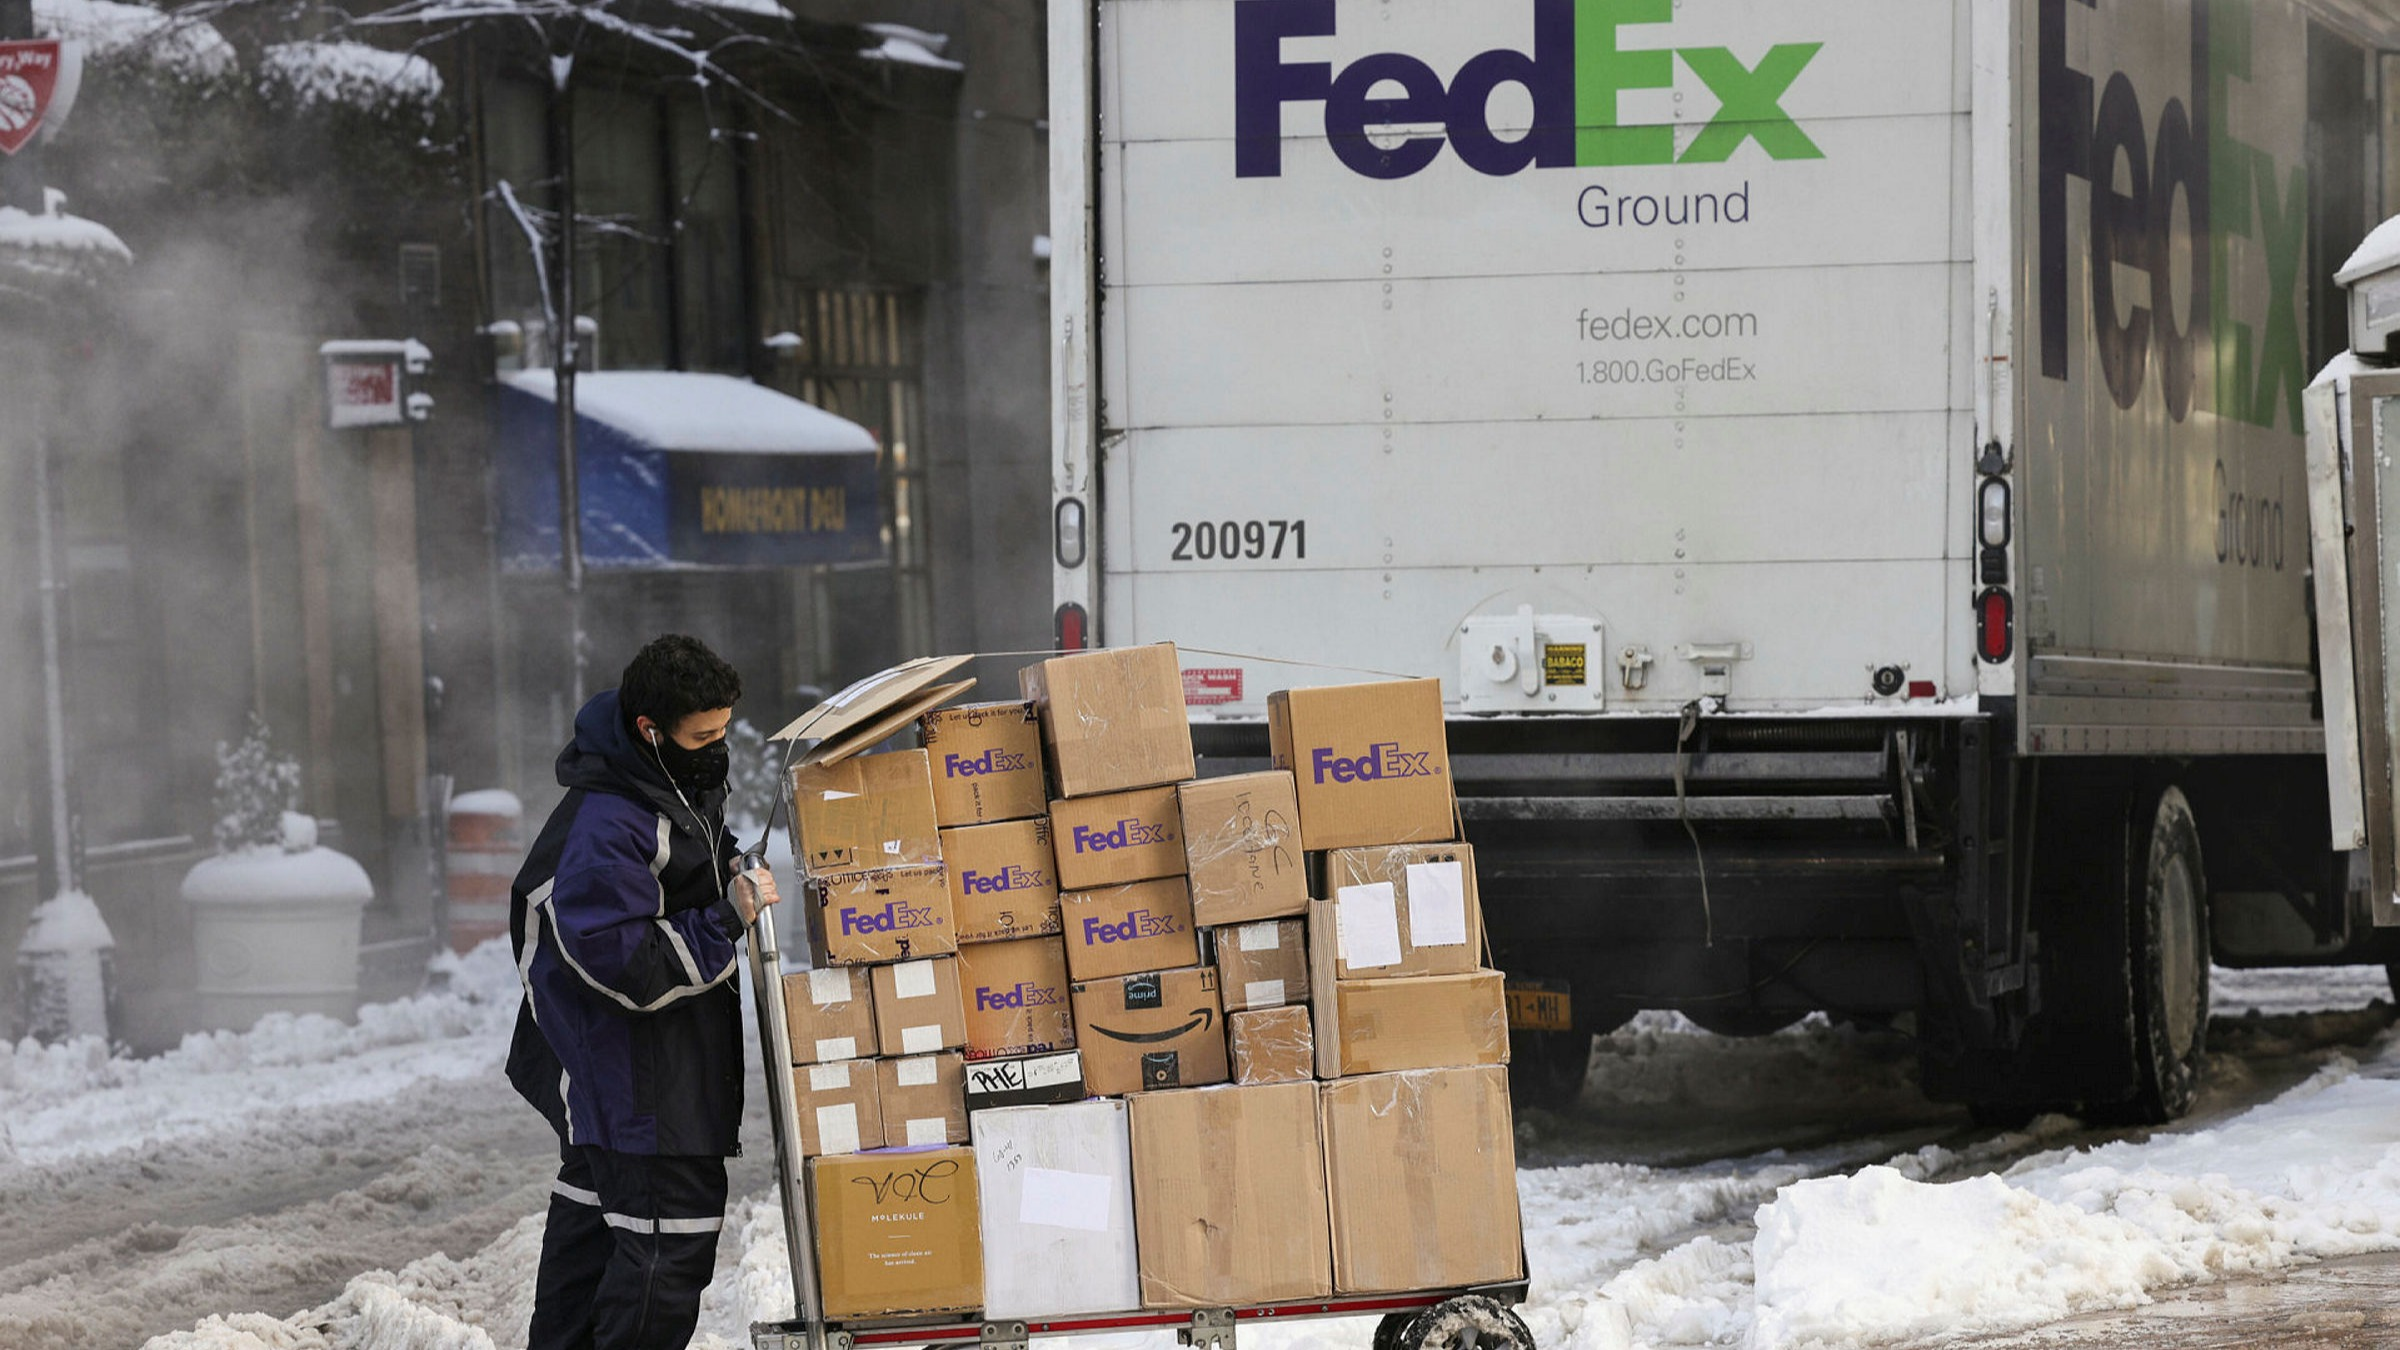 Fedex Christmas Delivery Schedule 2021 Fedex Results Show Scale Of Online Shopping Boom Financial Times